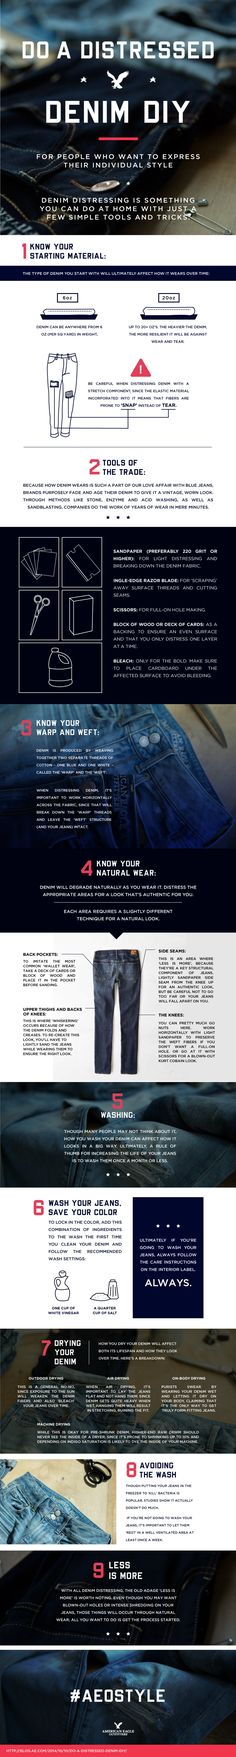 Always wonder how your favorite style icons achieve the perfect distressed denim look? Here's a step-by-step guide on how to distress your denim at home with a few simple tools and tricks.